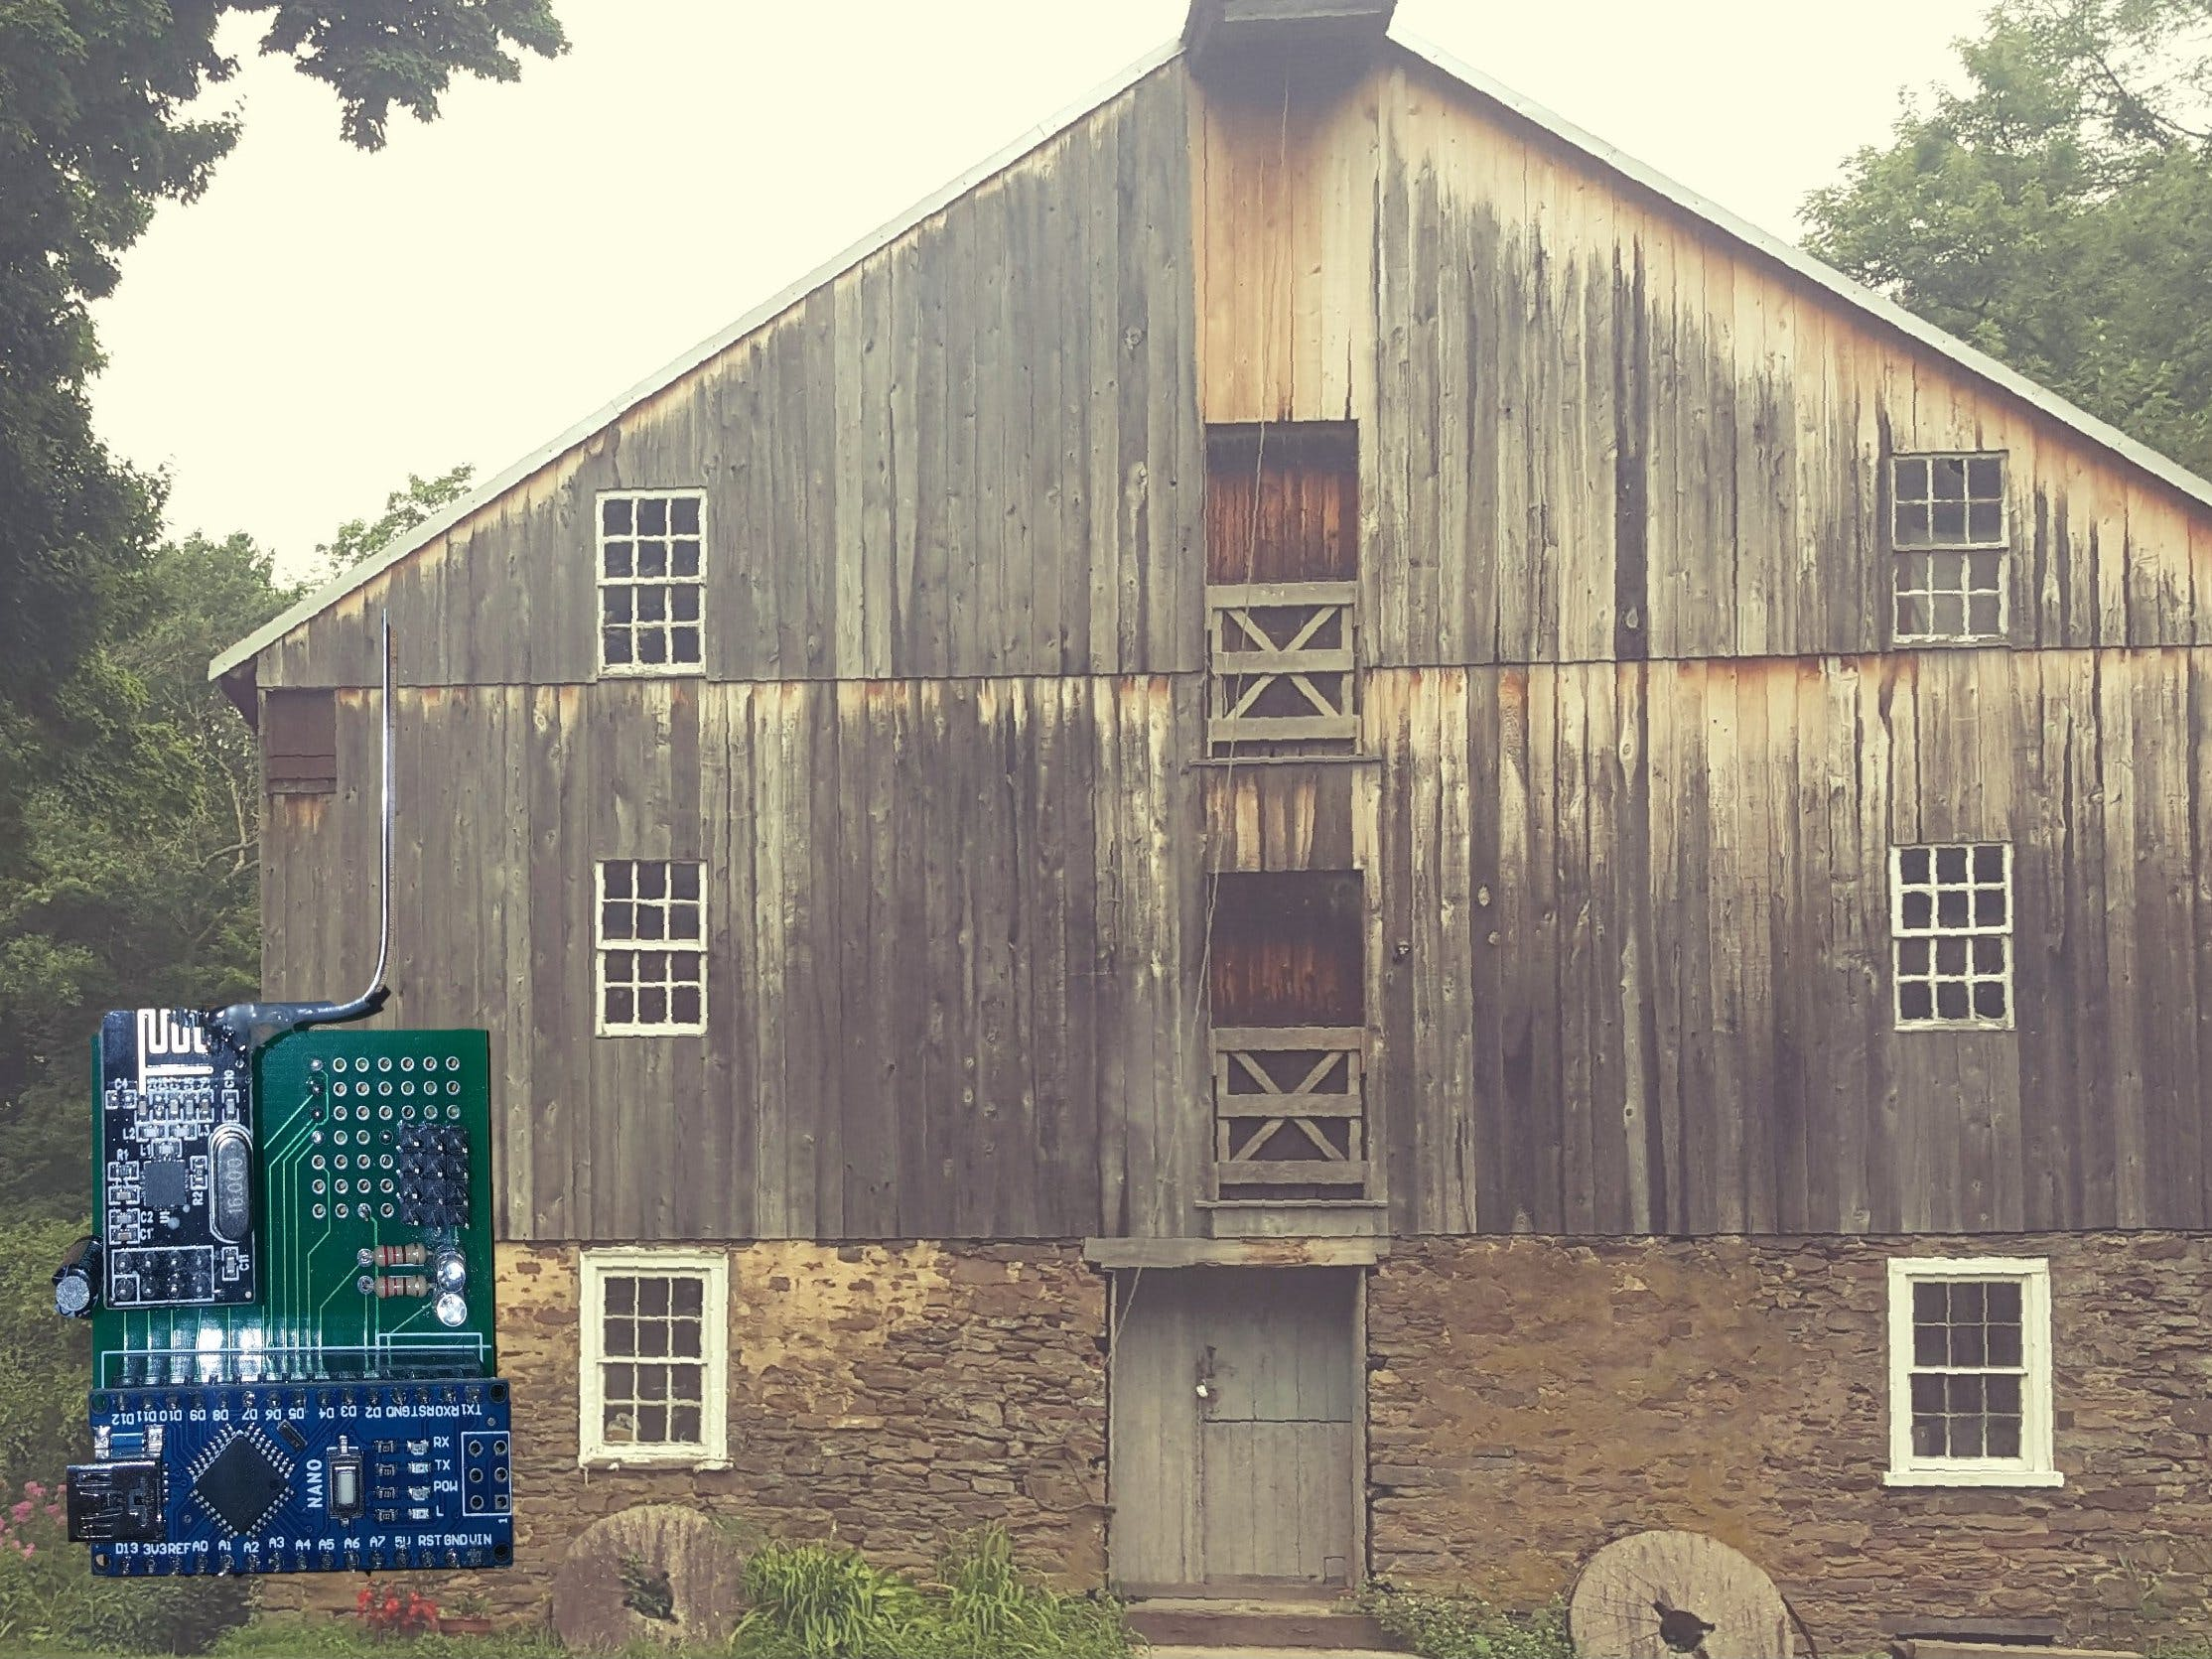 Building a Sensor Network for an 18th Century Gristmill